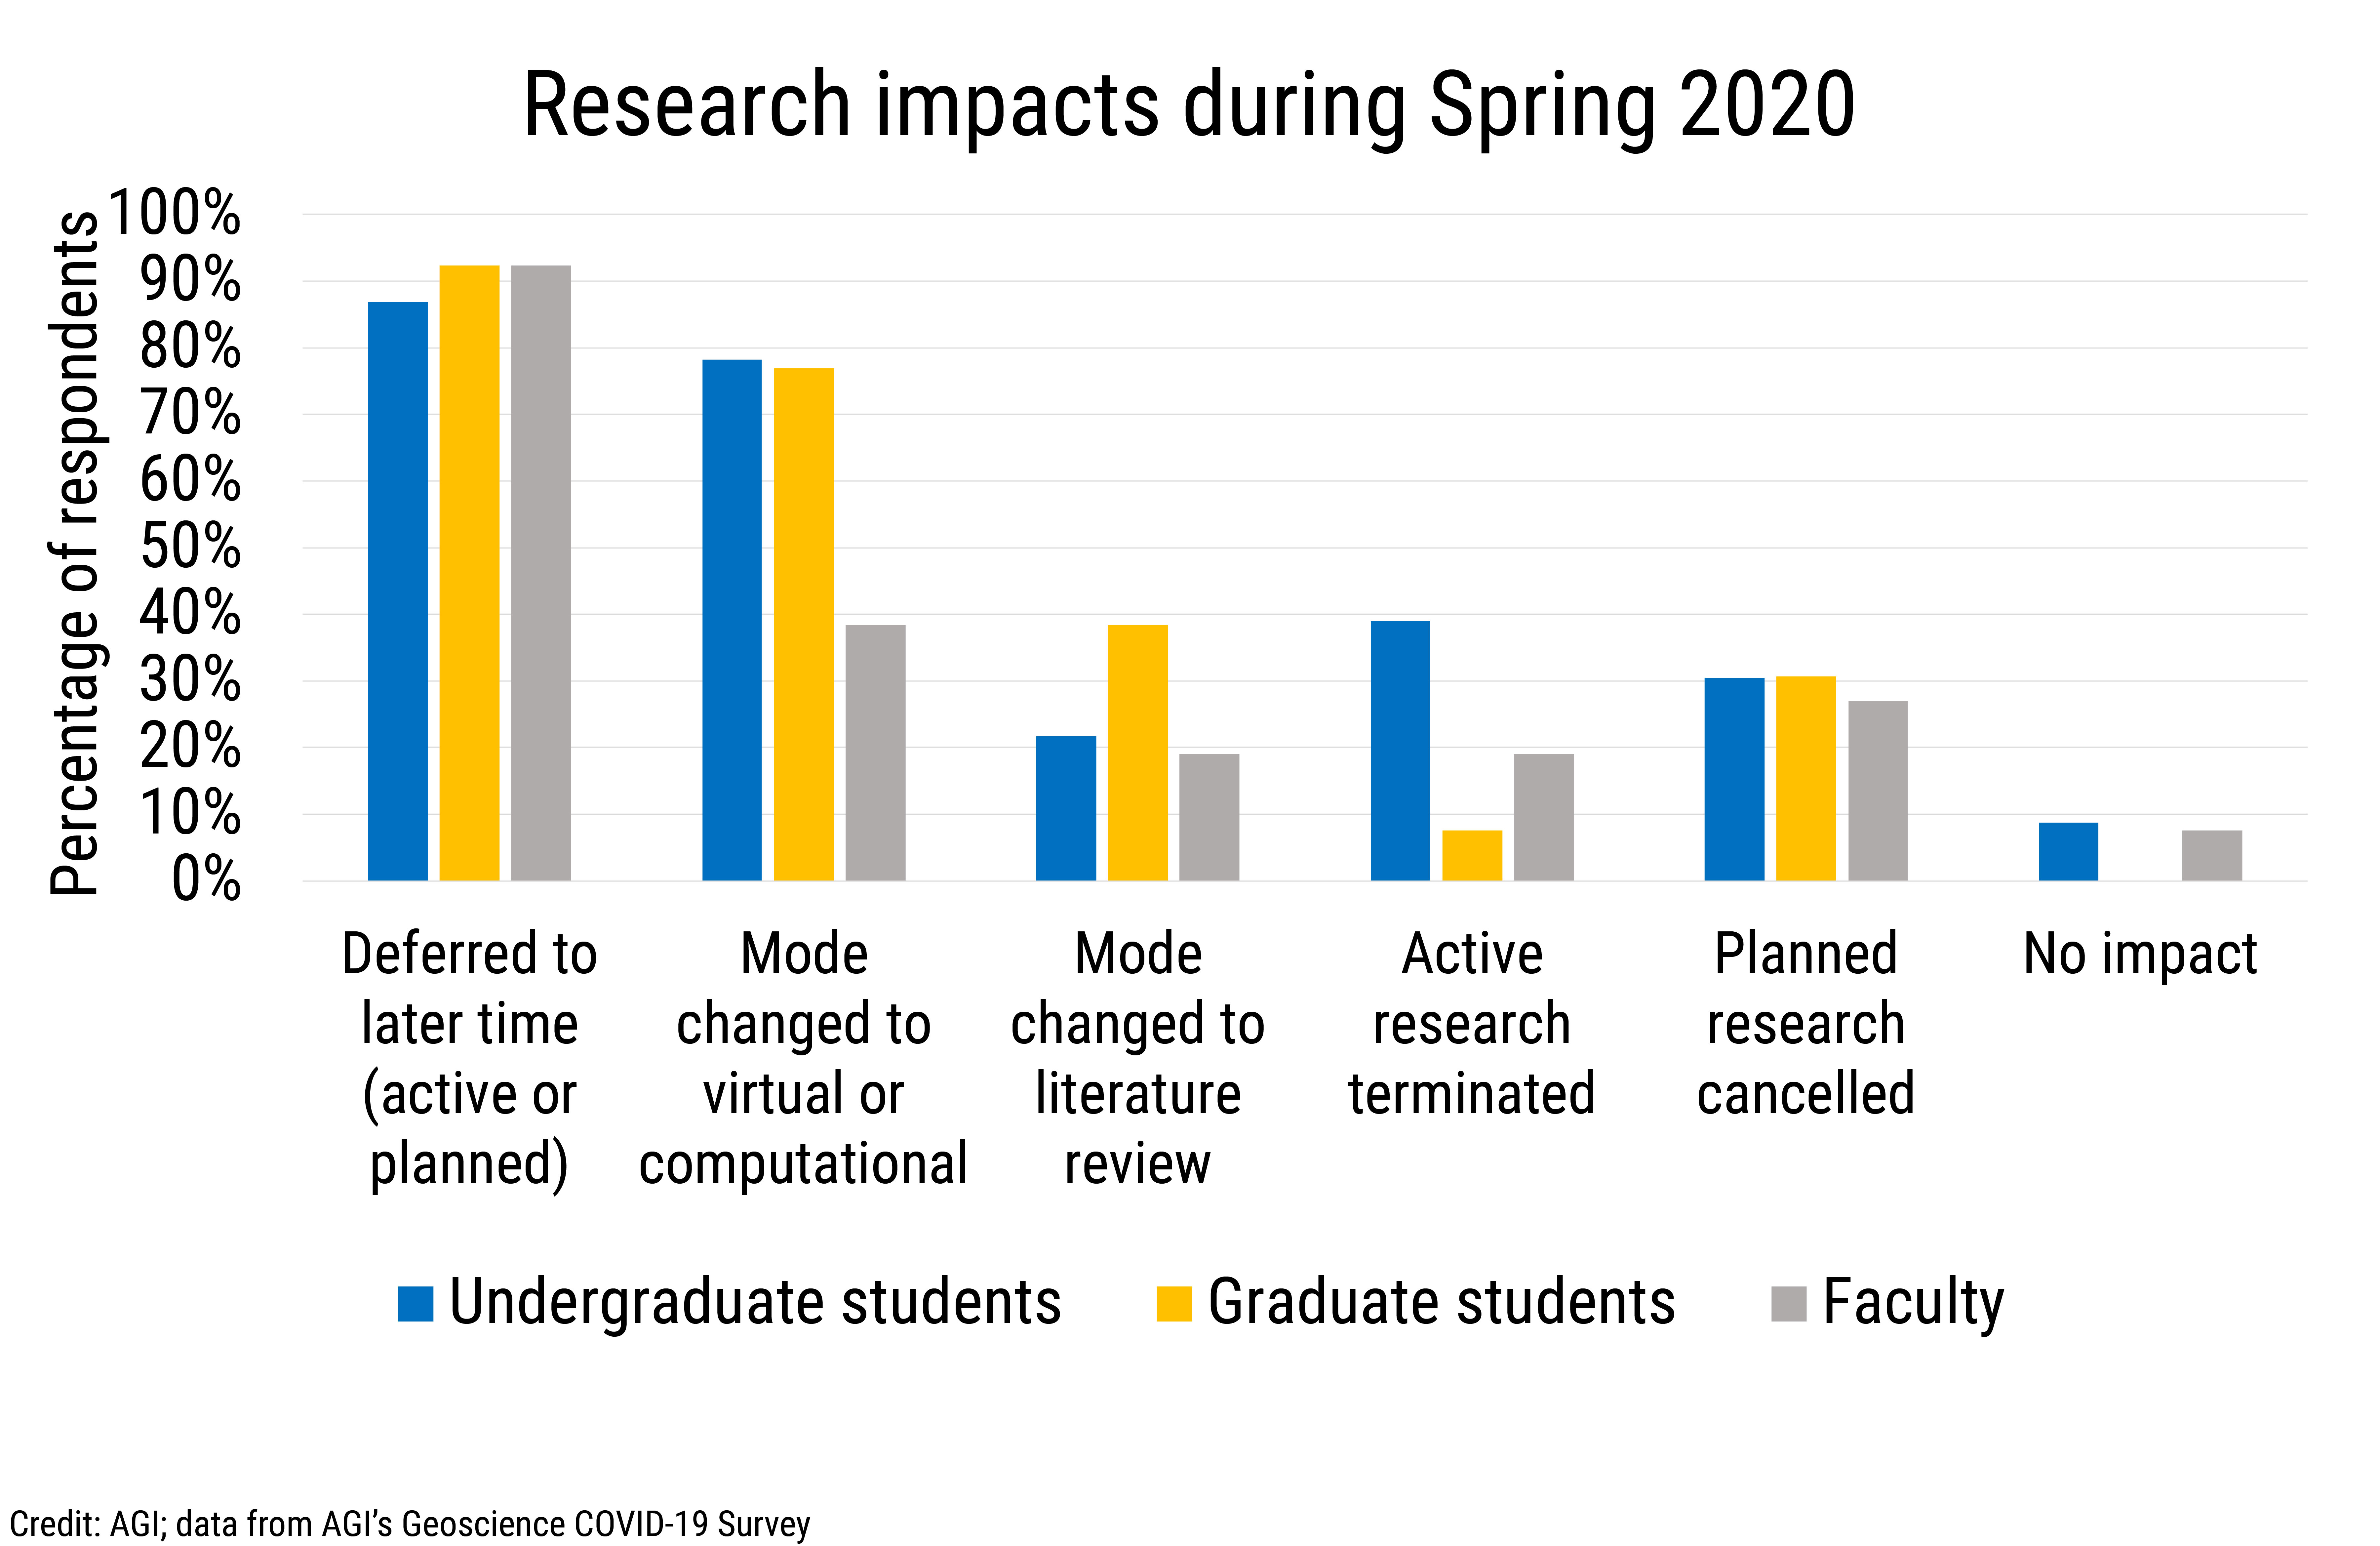 Data Brief 2020-006 chart 03: Research impacts during Spring 2020 (credit: AGI)